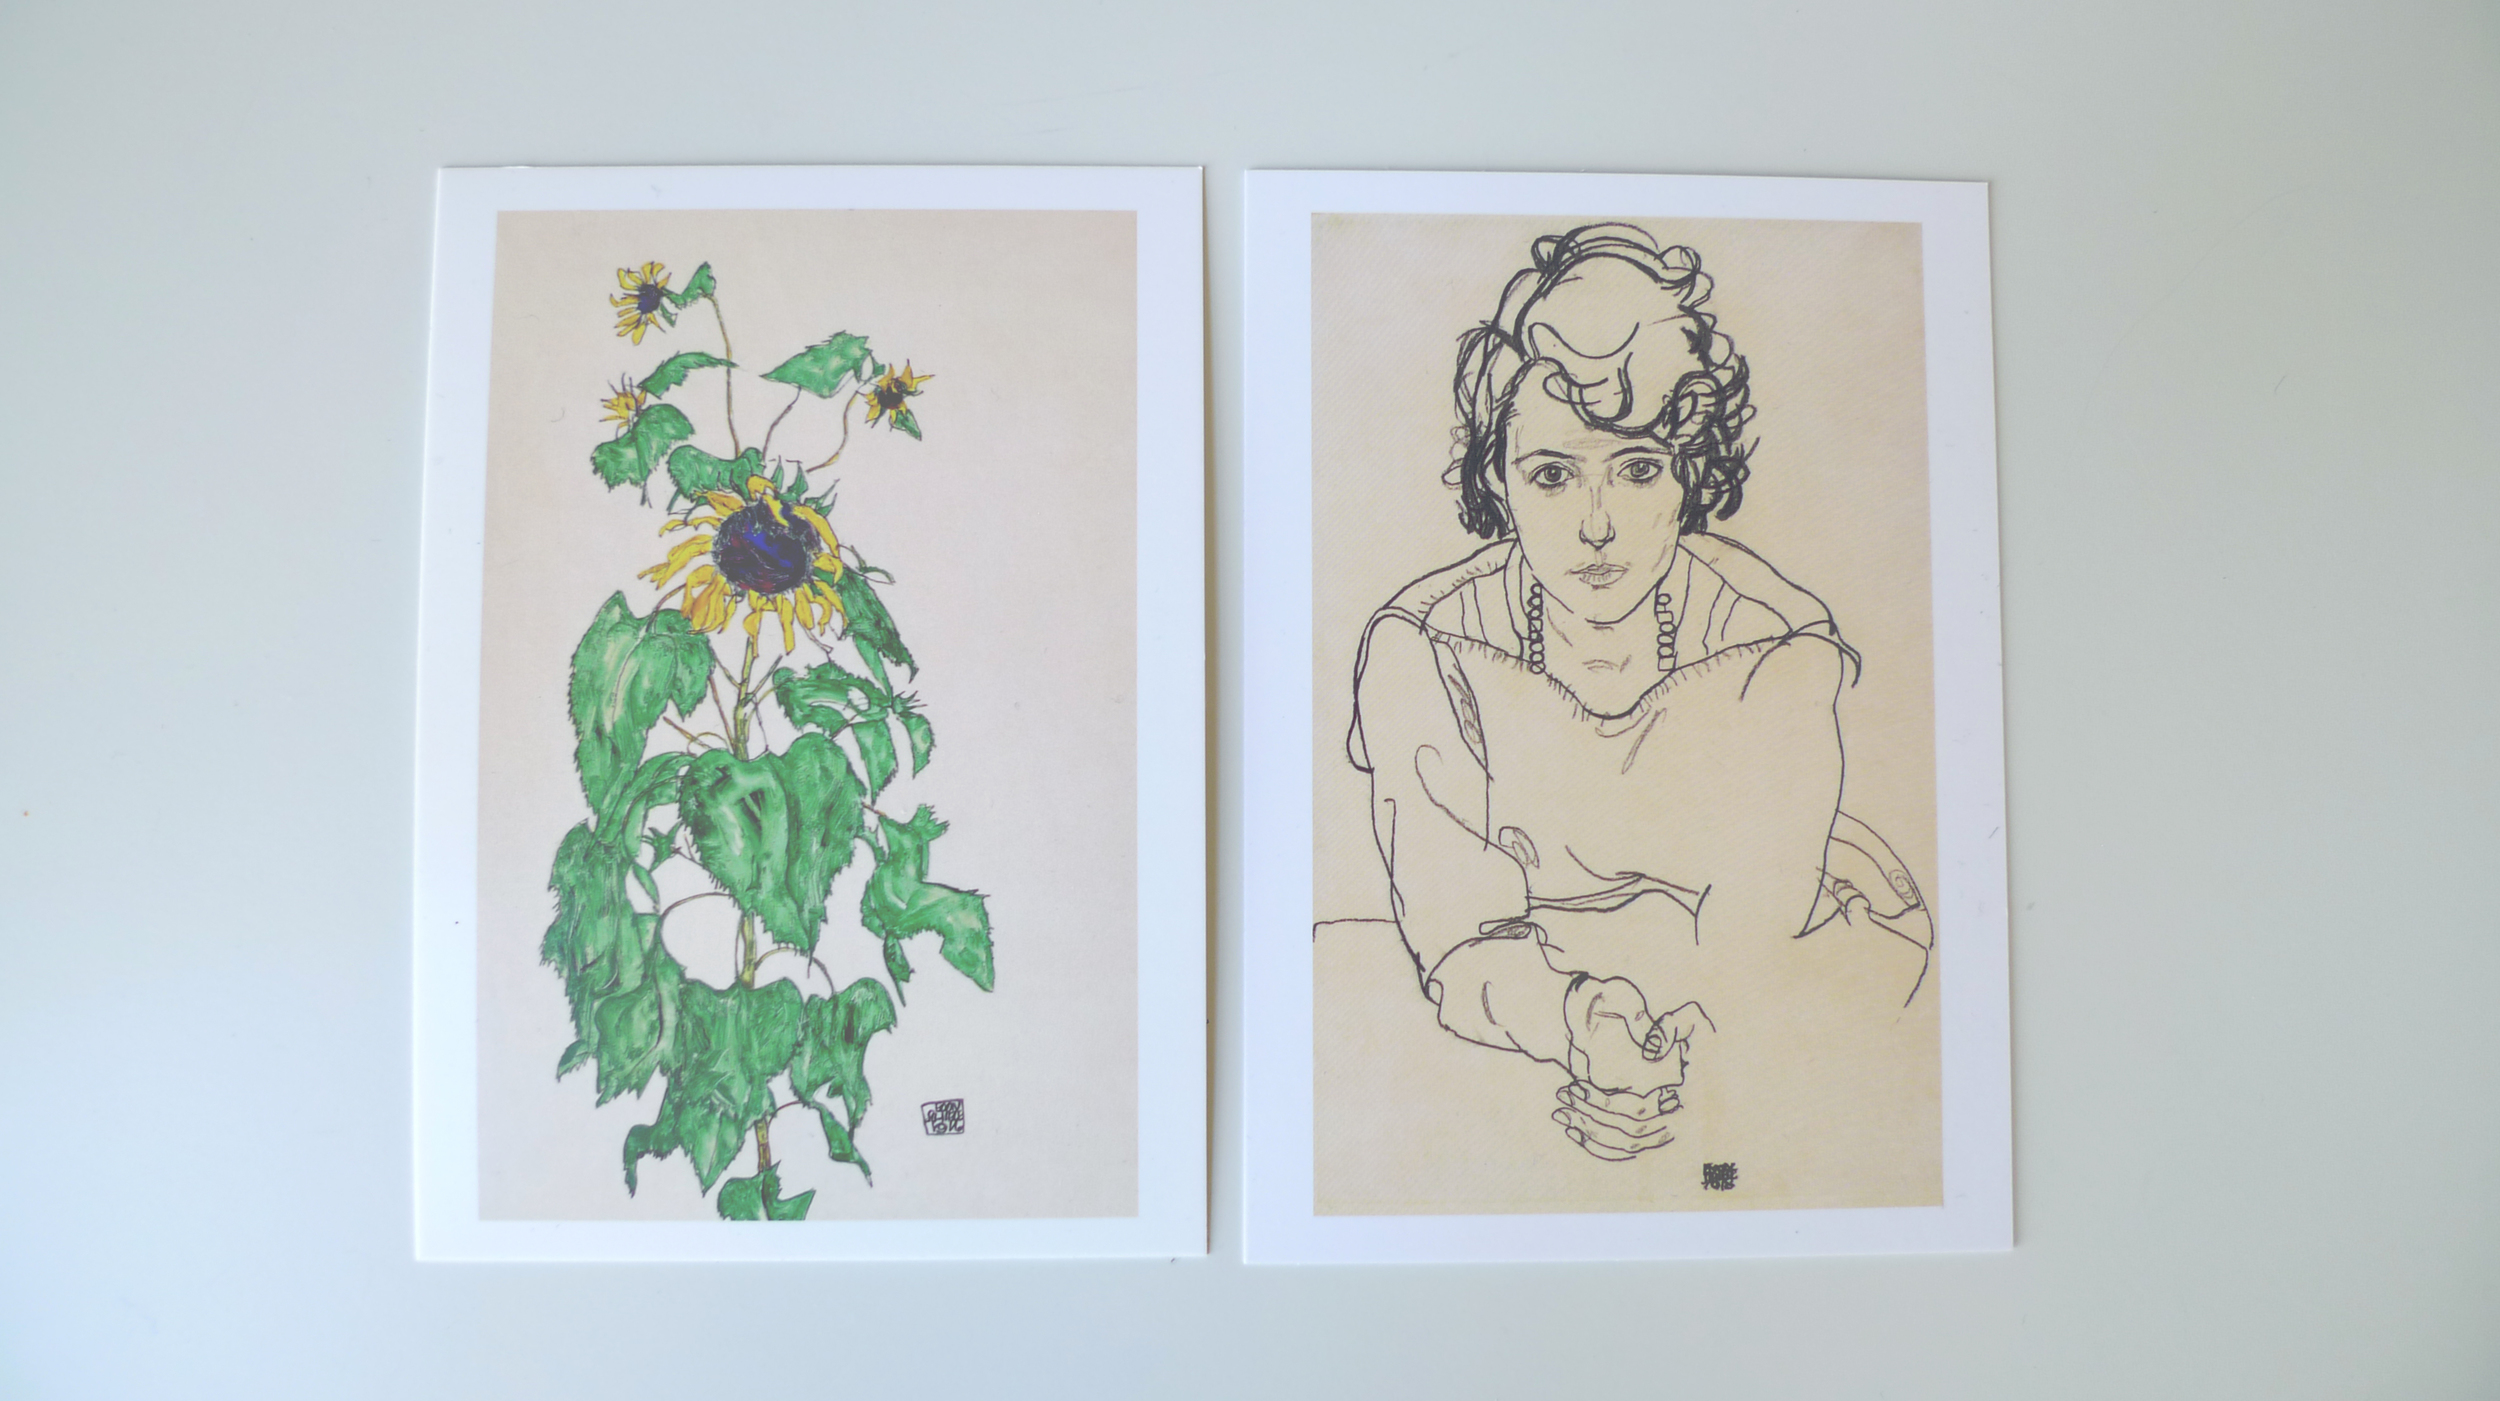 Two Egon Schiele postcards from the Neue Galerie shop: Sunflower, 1916 (left) andSeated Woman, 1918 (right)